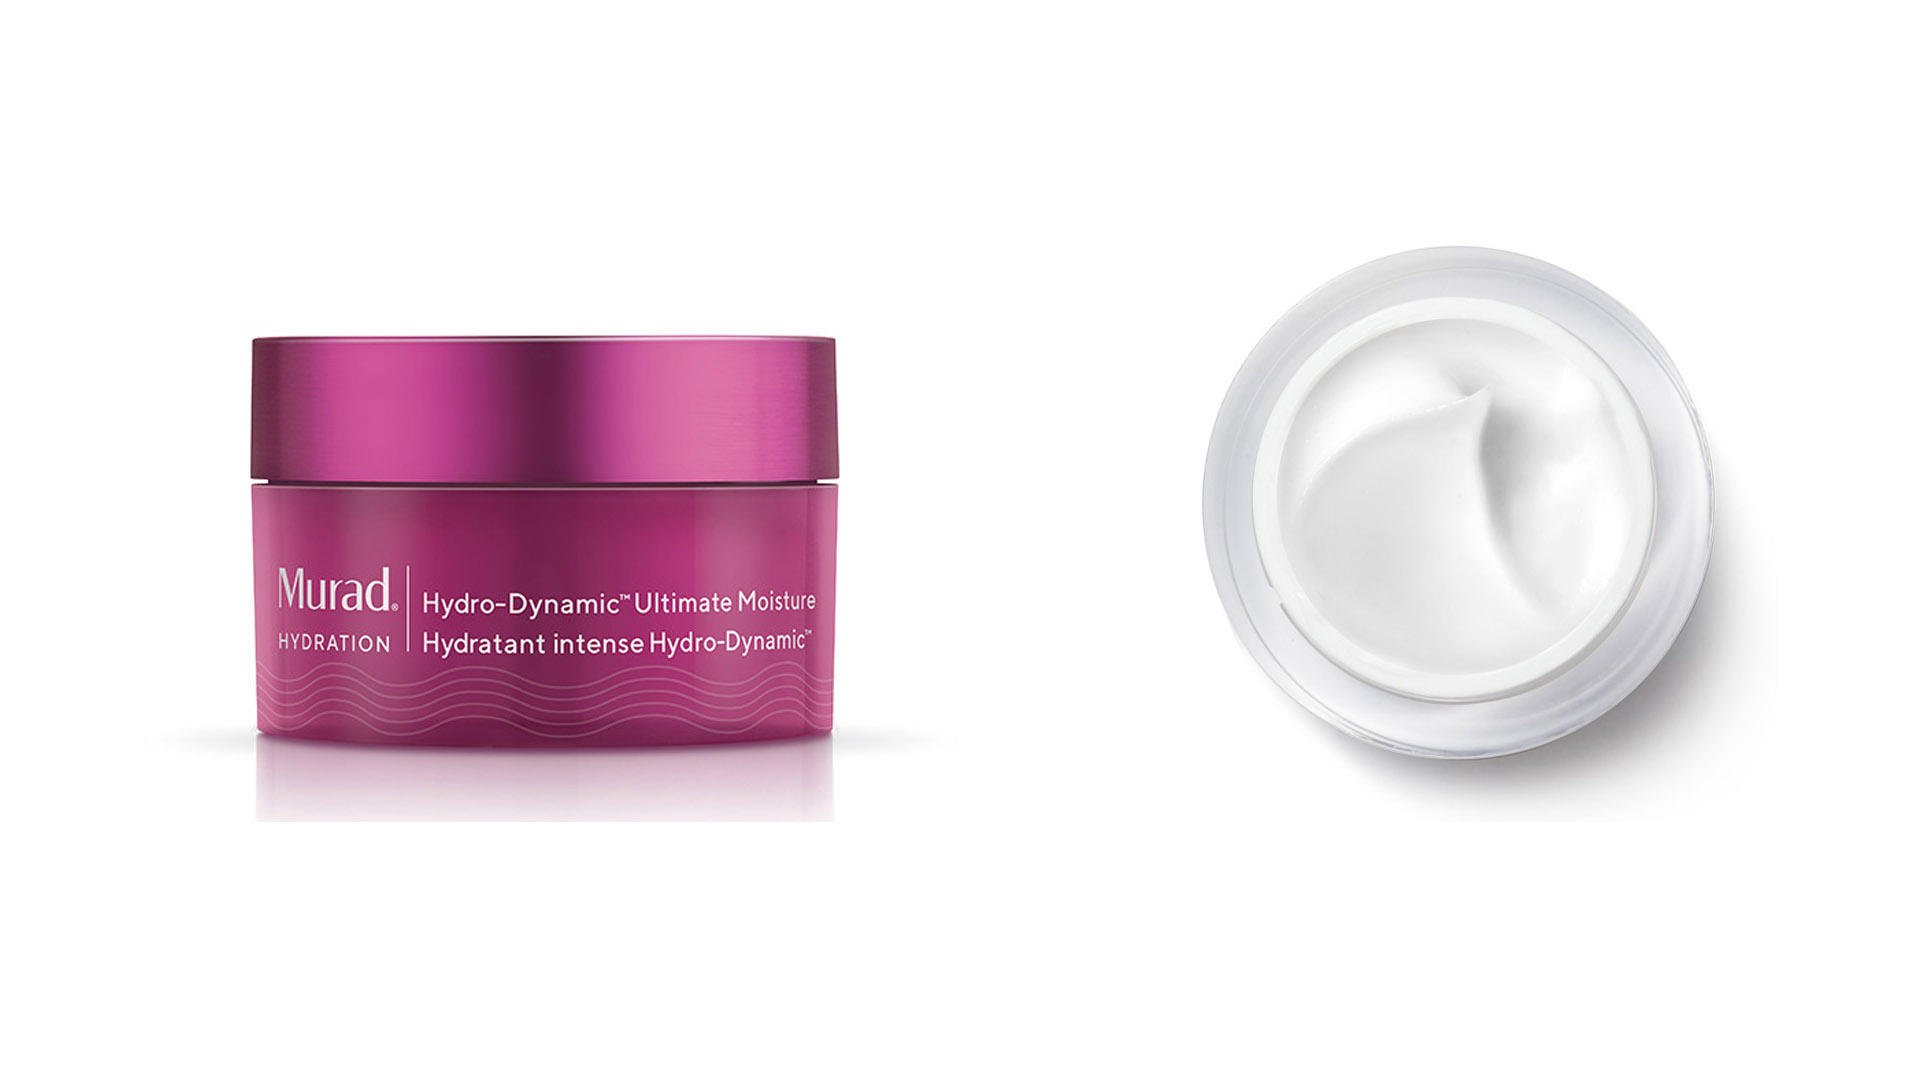 Hydro Dynamic Ultimate Moisture Is One Of 4 Life Changing Skin Care Products